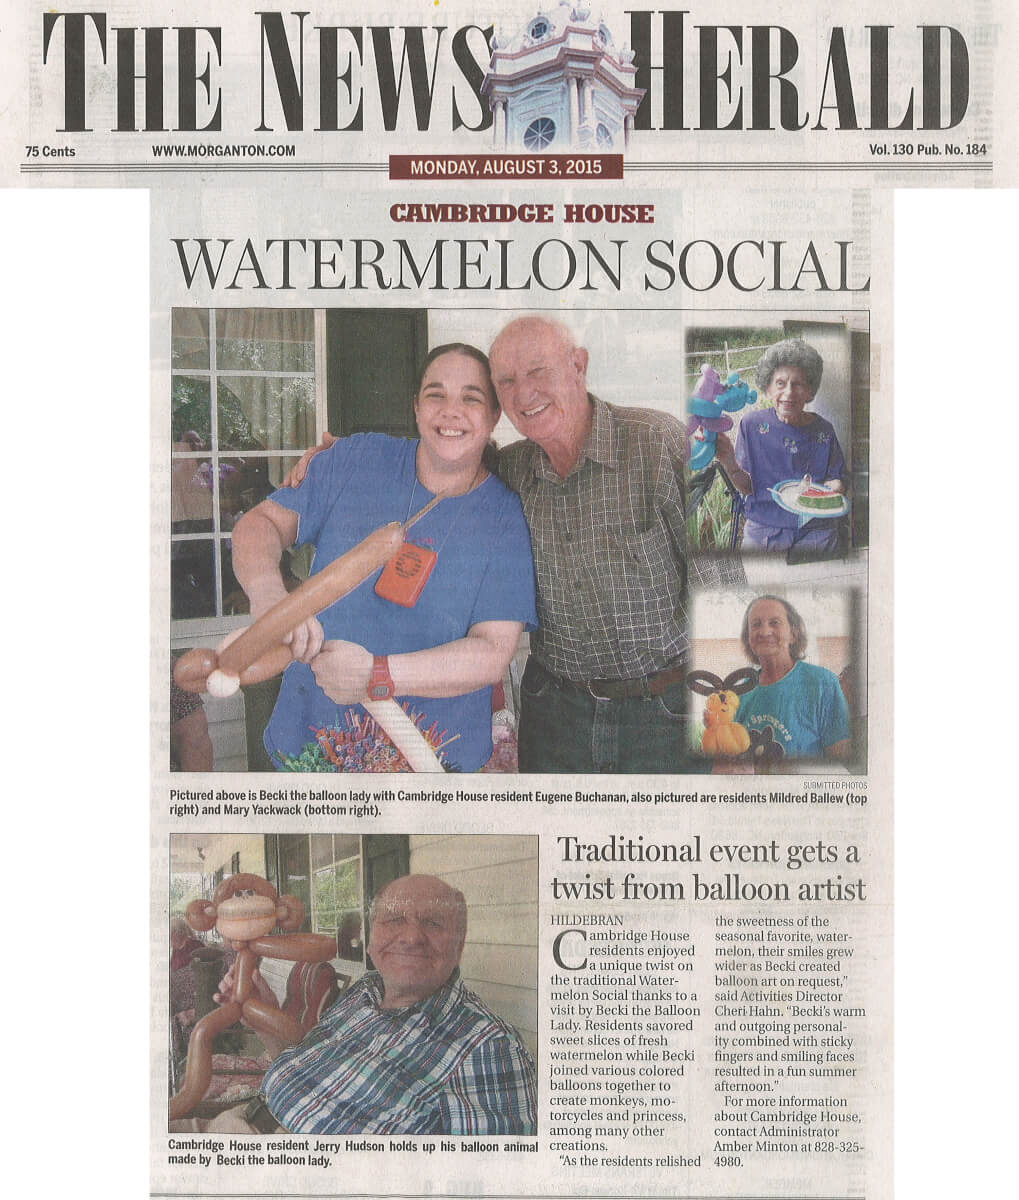 Cambridge House has a Watermelon Social story in the News Herald August 3, 2015